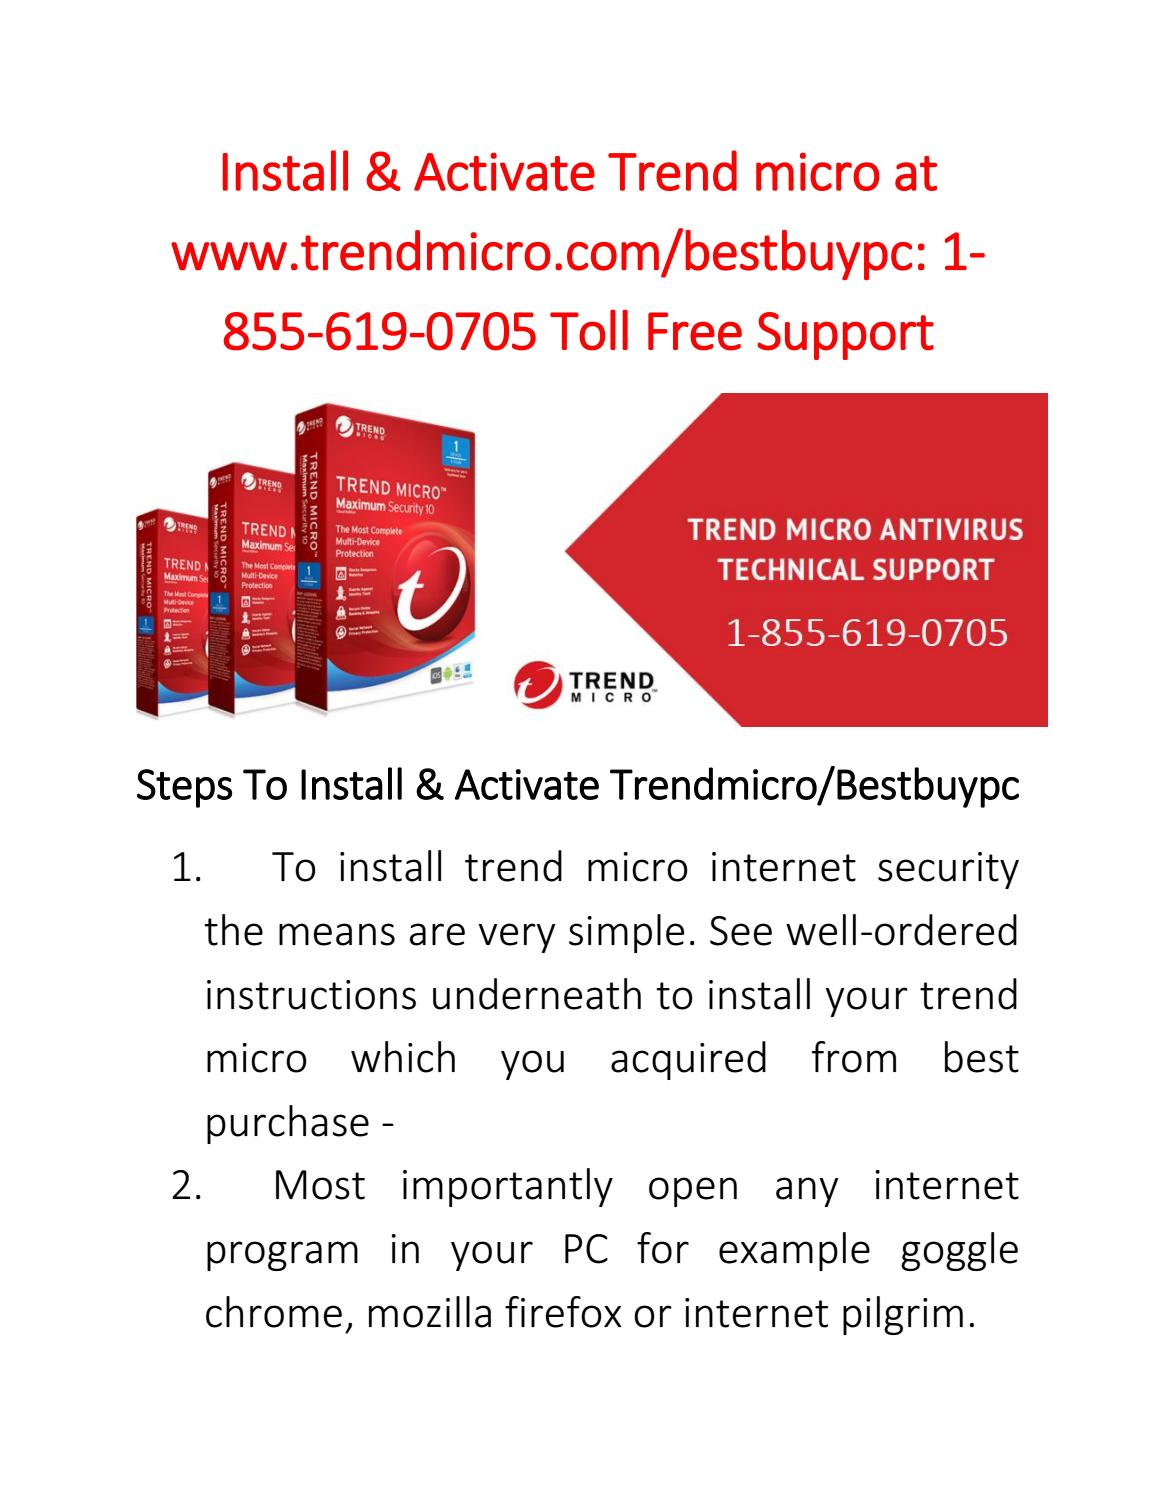 Install & Activate Trend micro at www trendmicro com